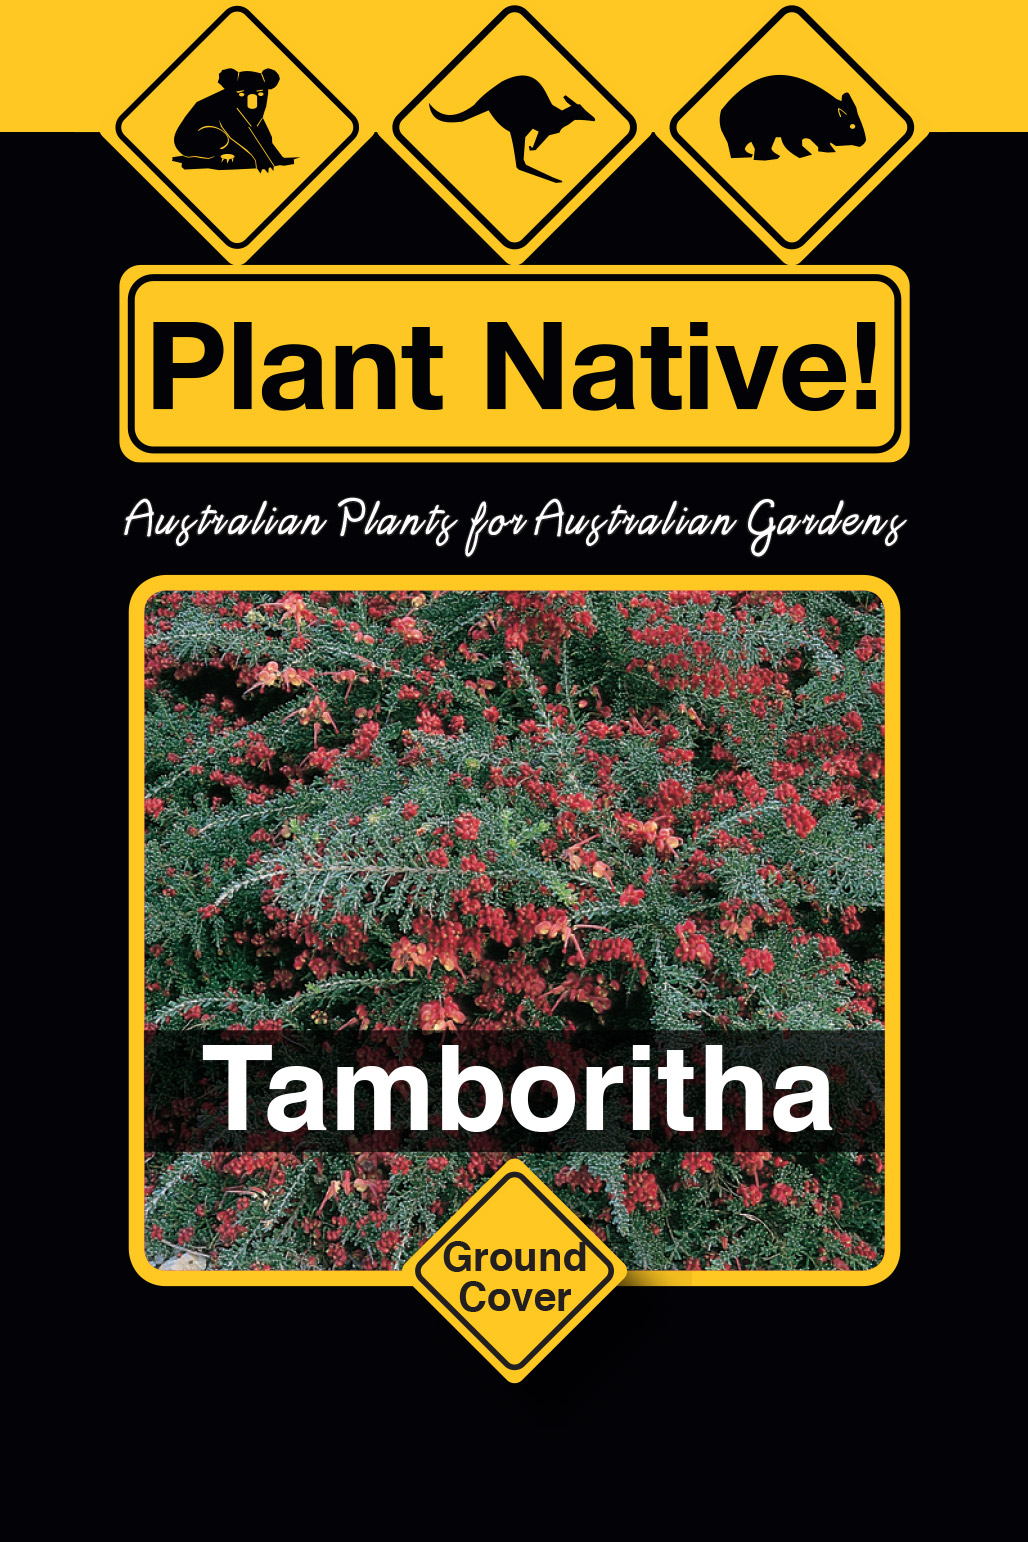 Tamboritha - Plant Native!